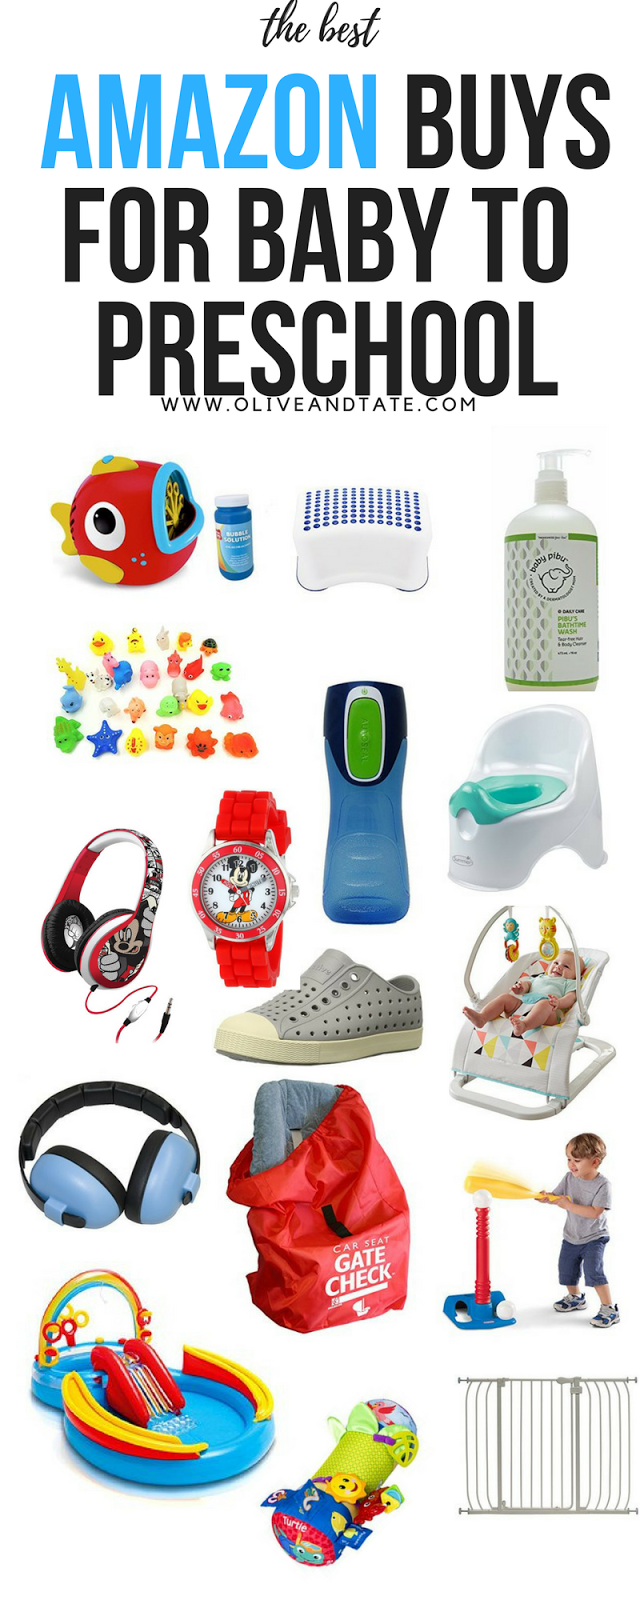 Amazon Faves: For Baby, Toddlers and Preschoolers